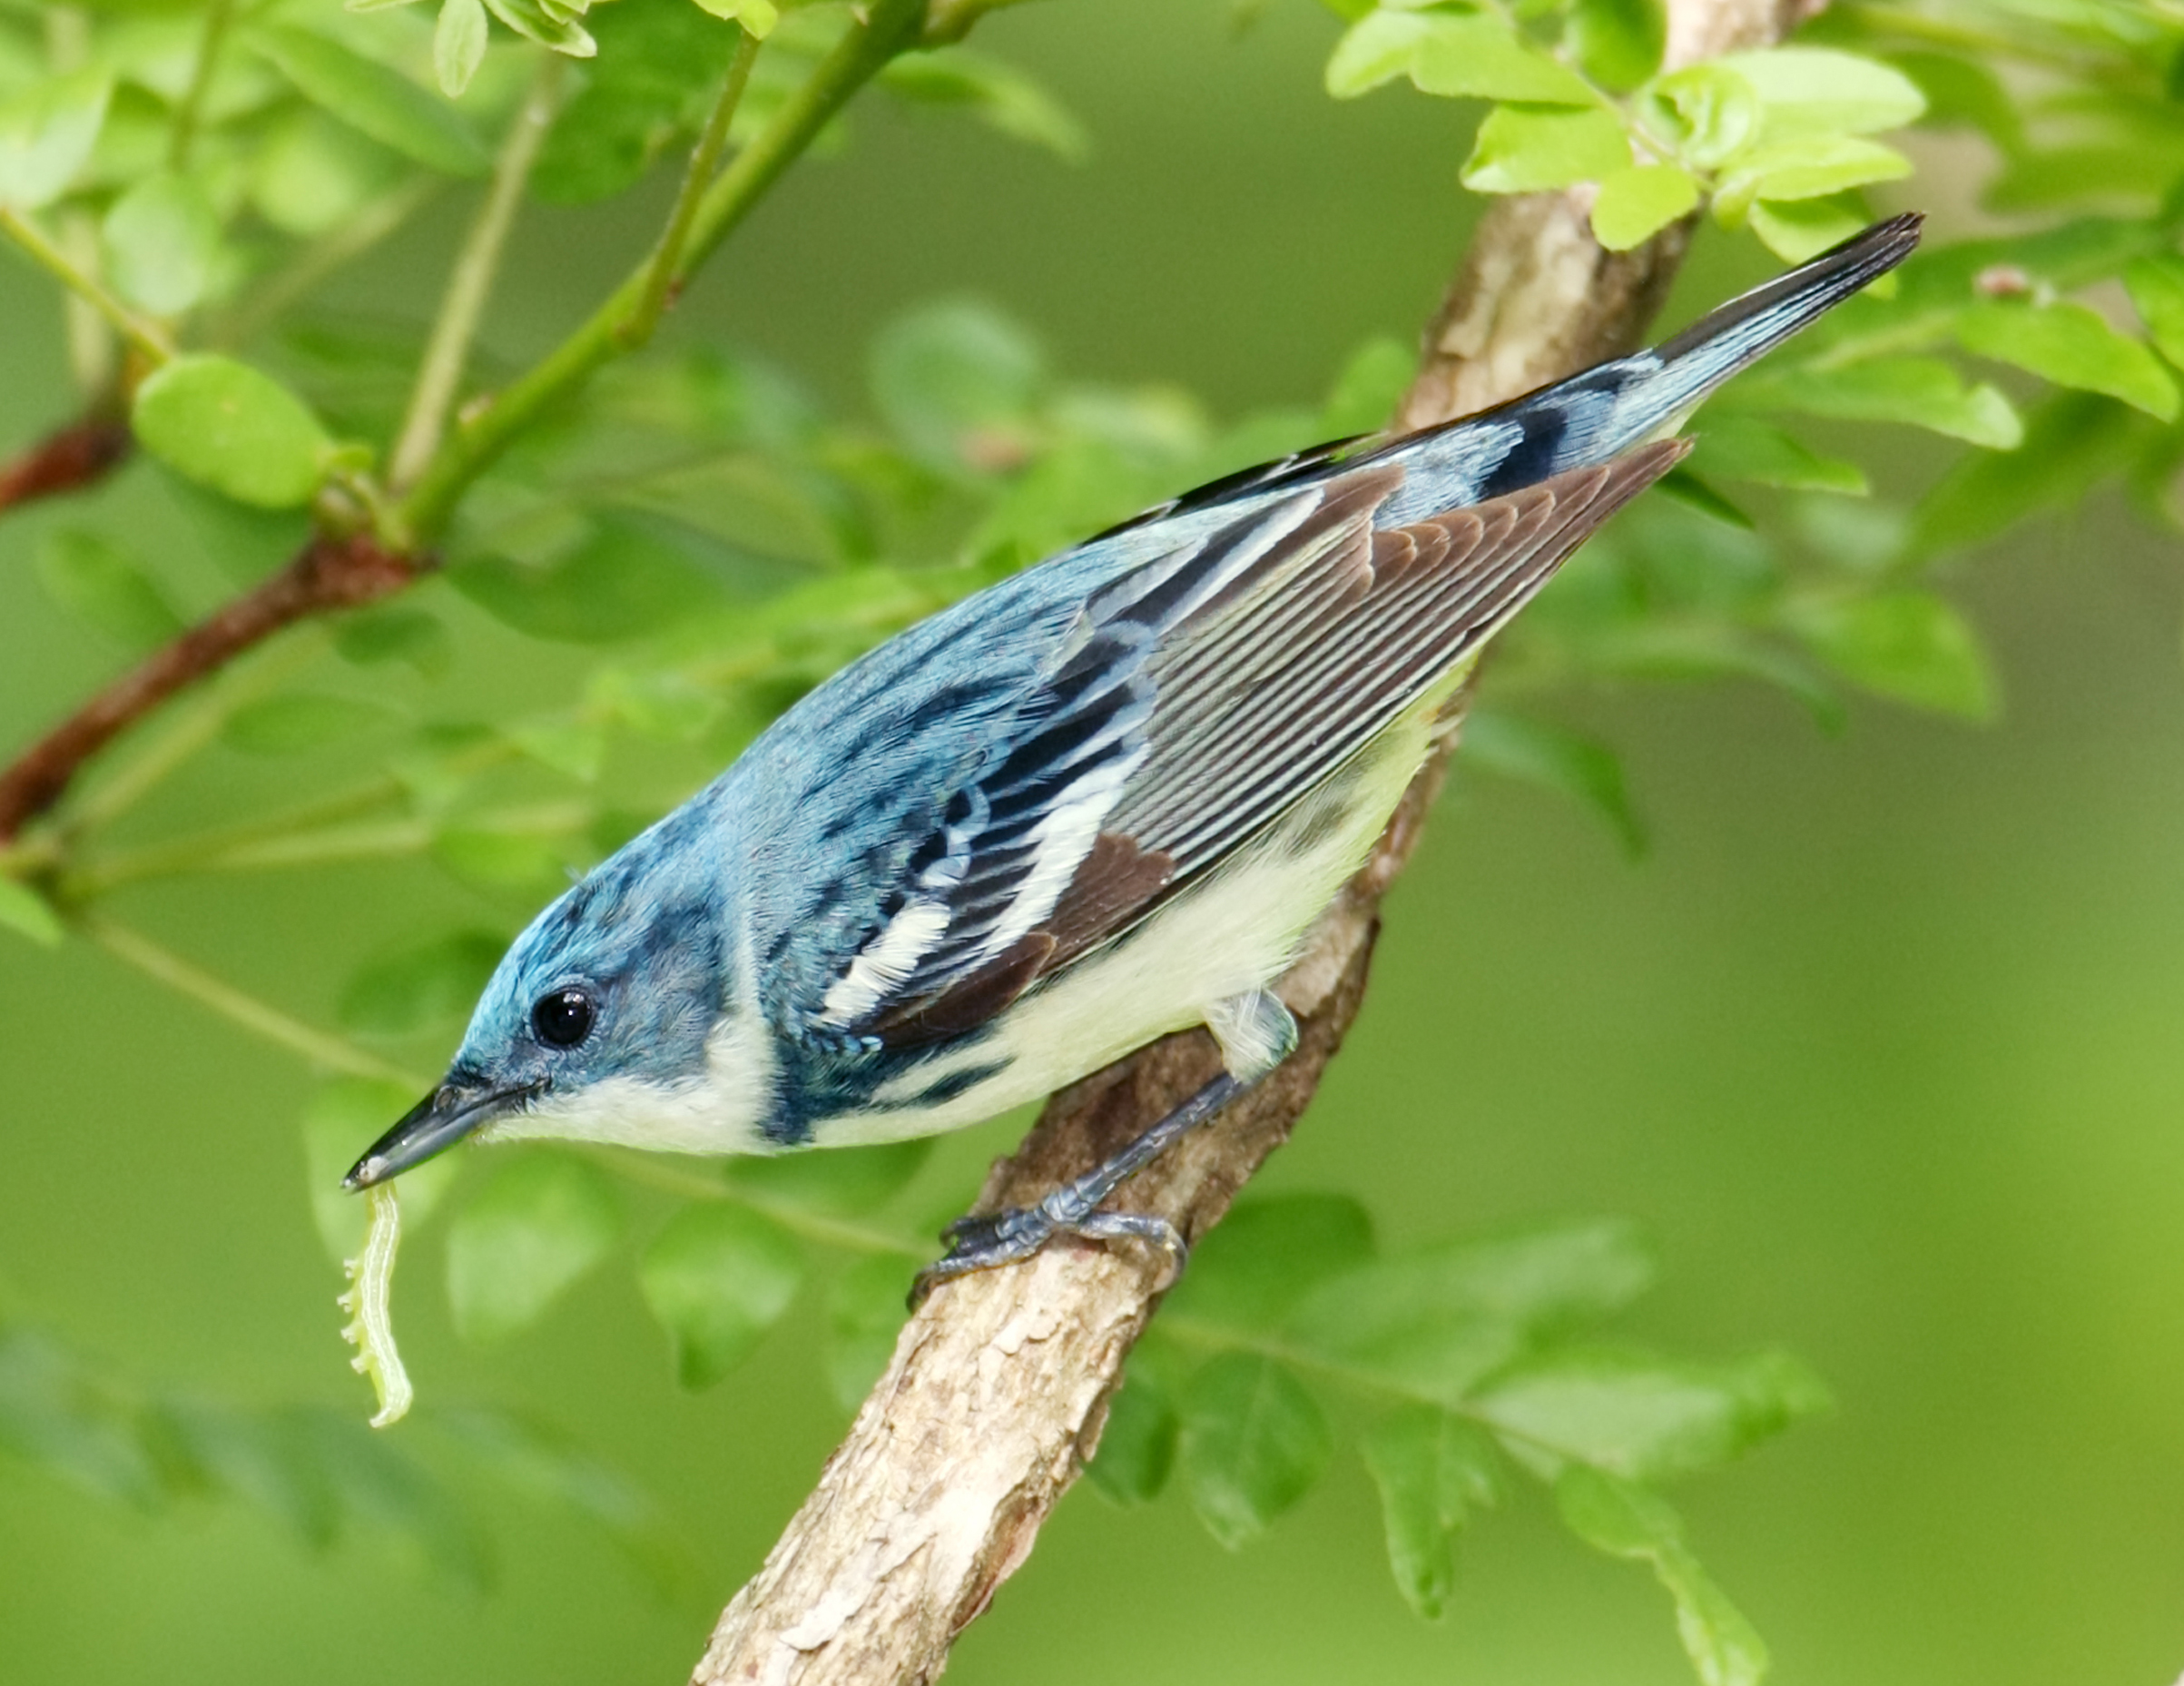 Cerulean Warbler, Dendroica cerulean, a small bird of the deciduous forest treetops,  http://refugeassociation.org/wp-content/uploads/2011/07/jim-burns-cerulean-warbler.jpg